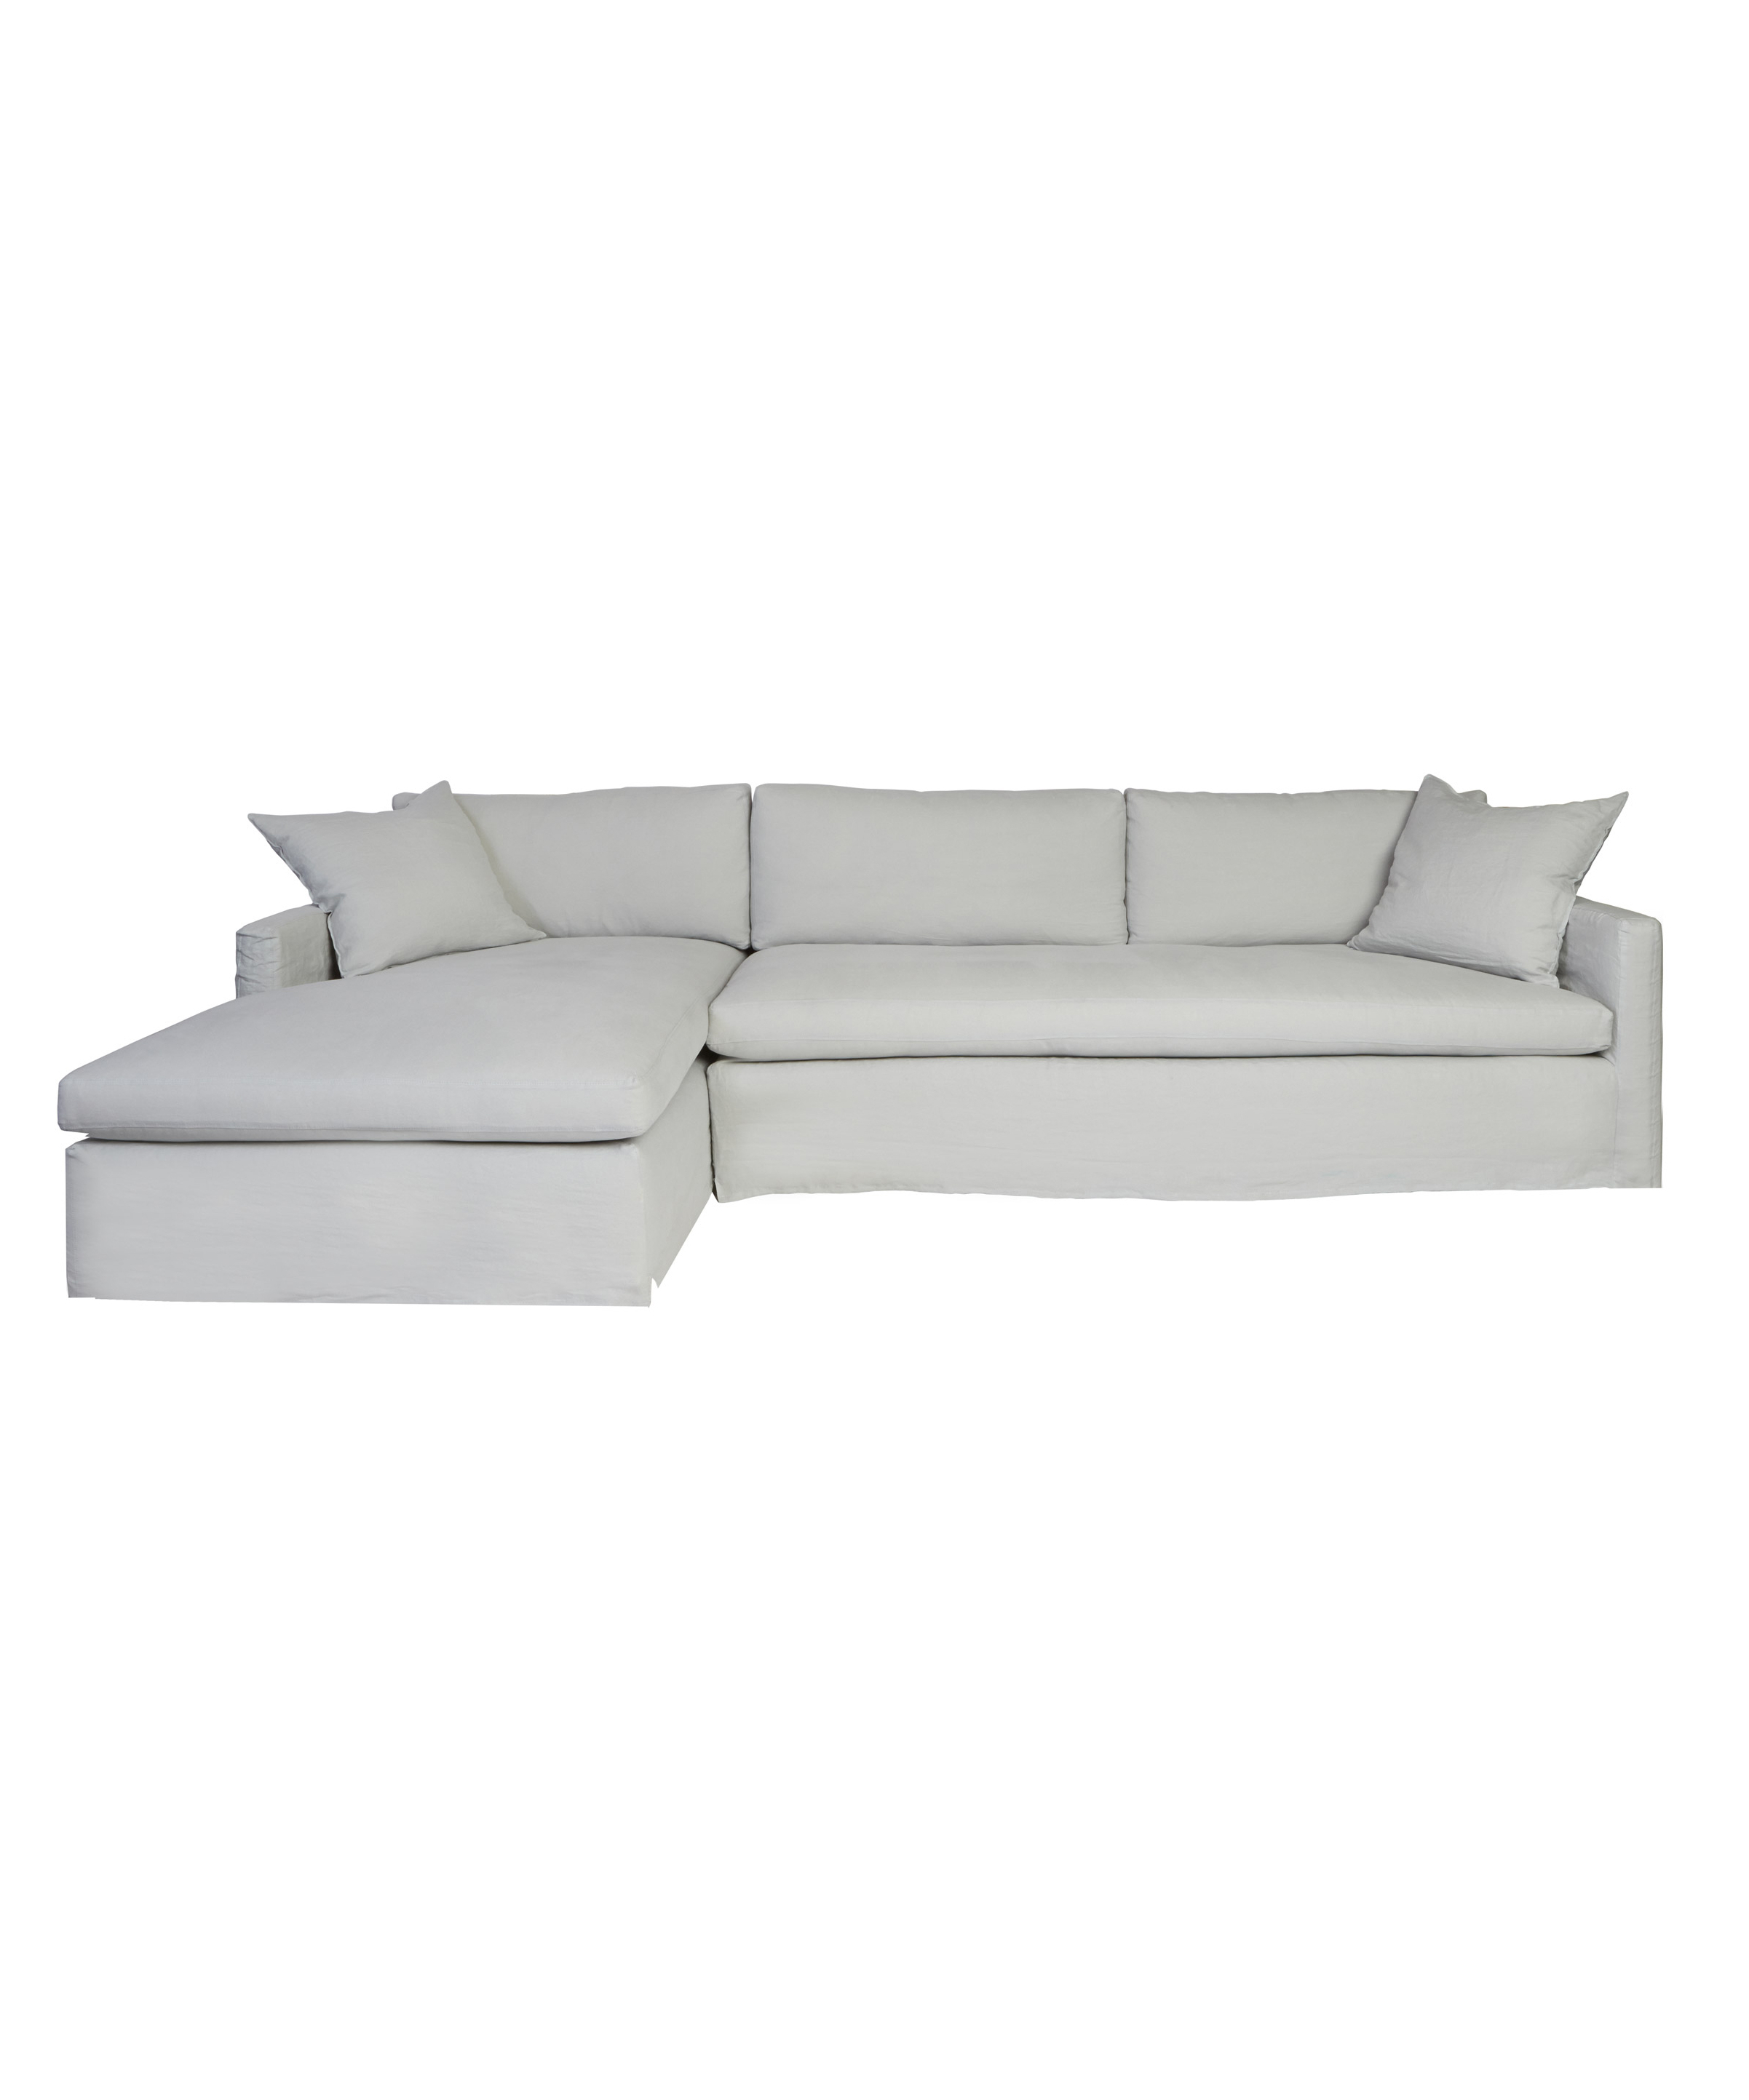 Louis 2 Piece Sectional (View 14 of 20)